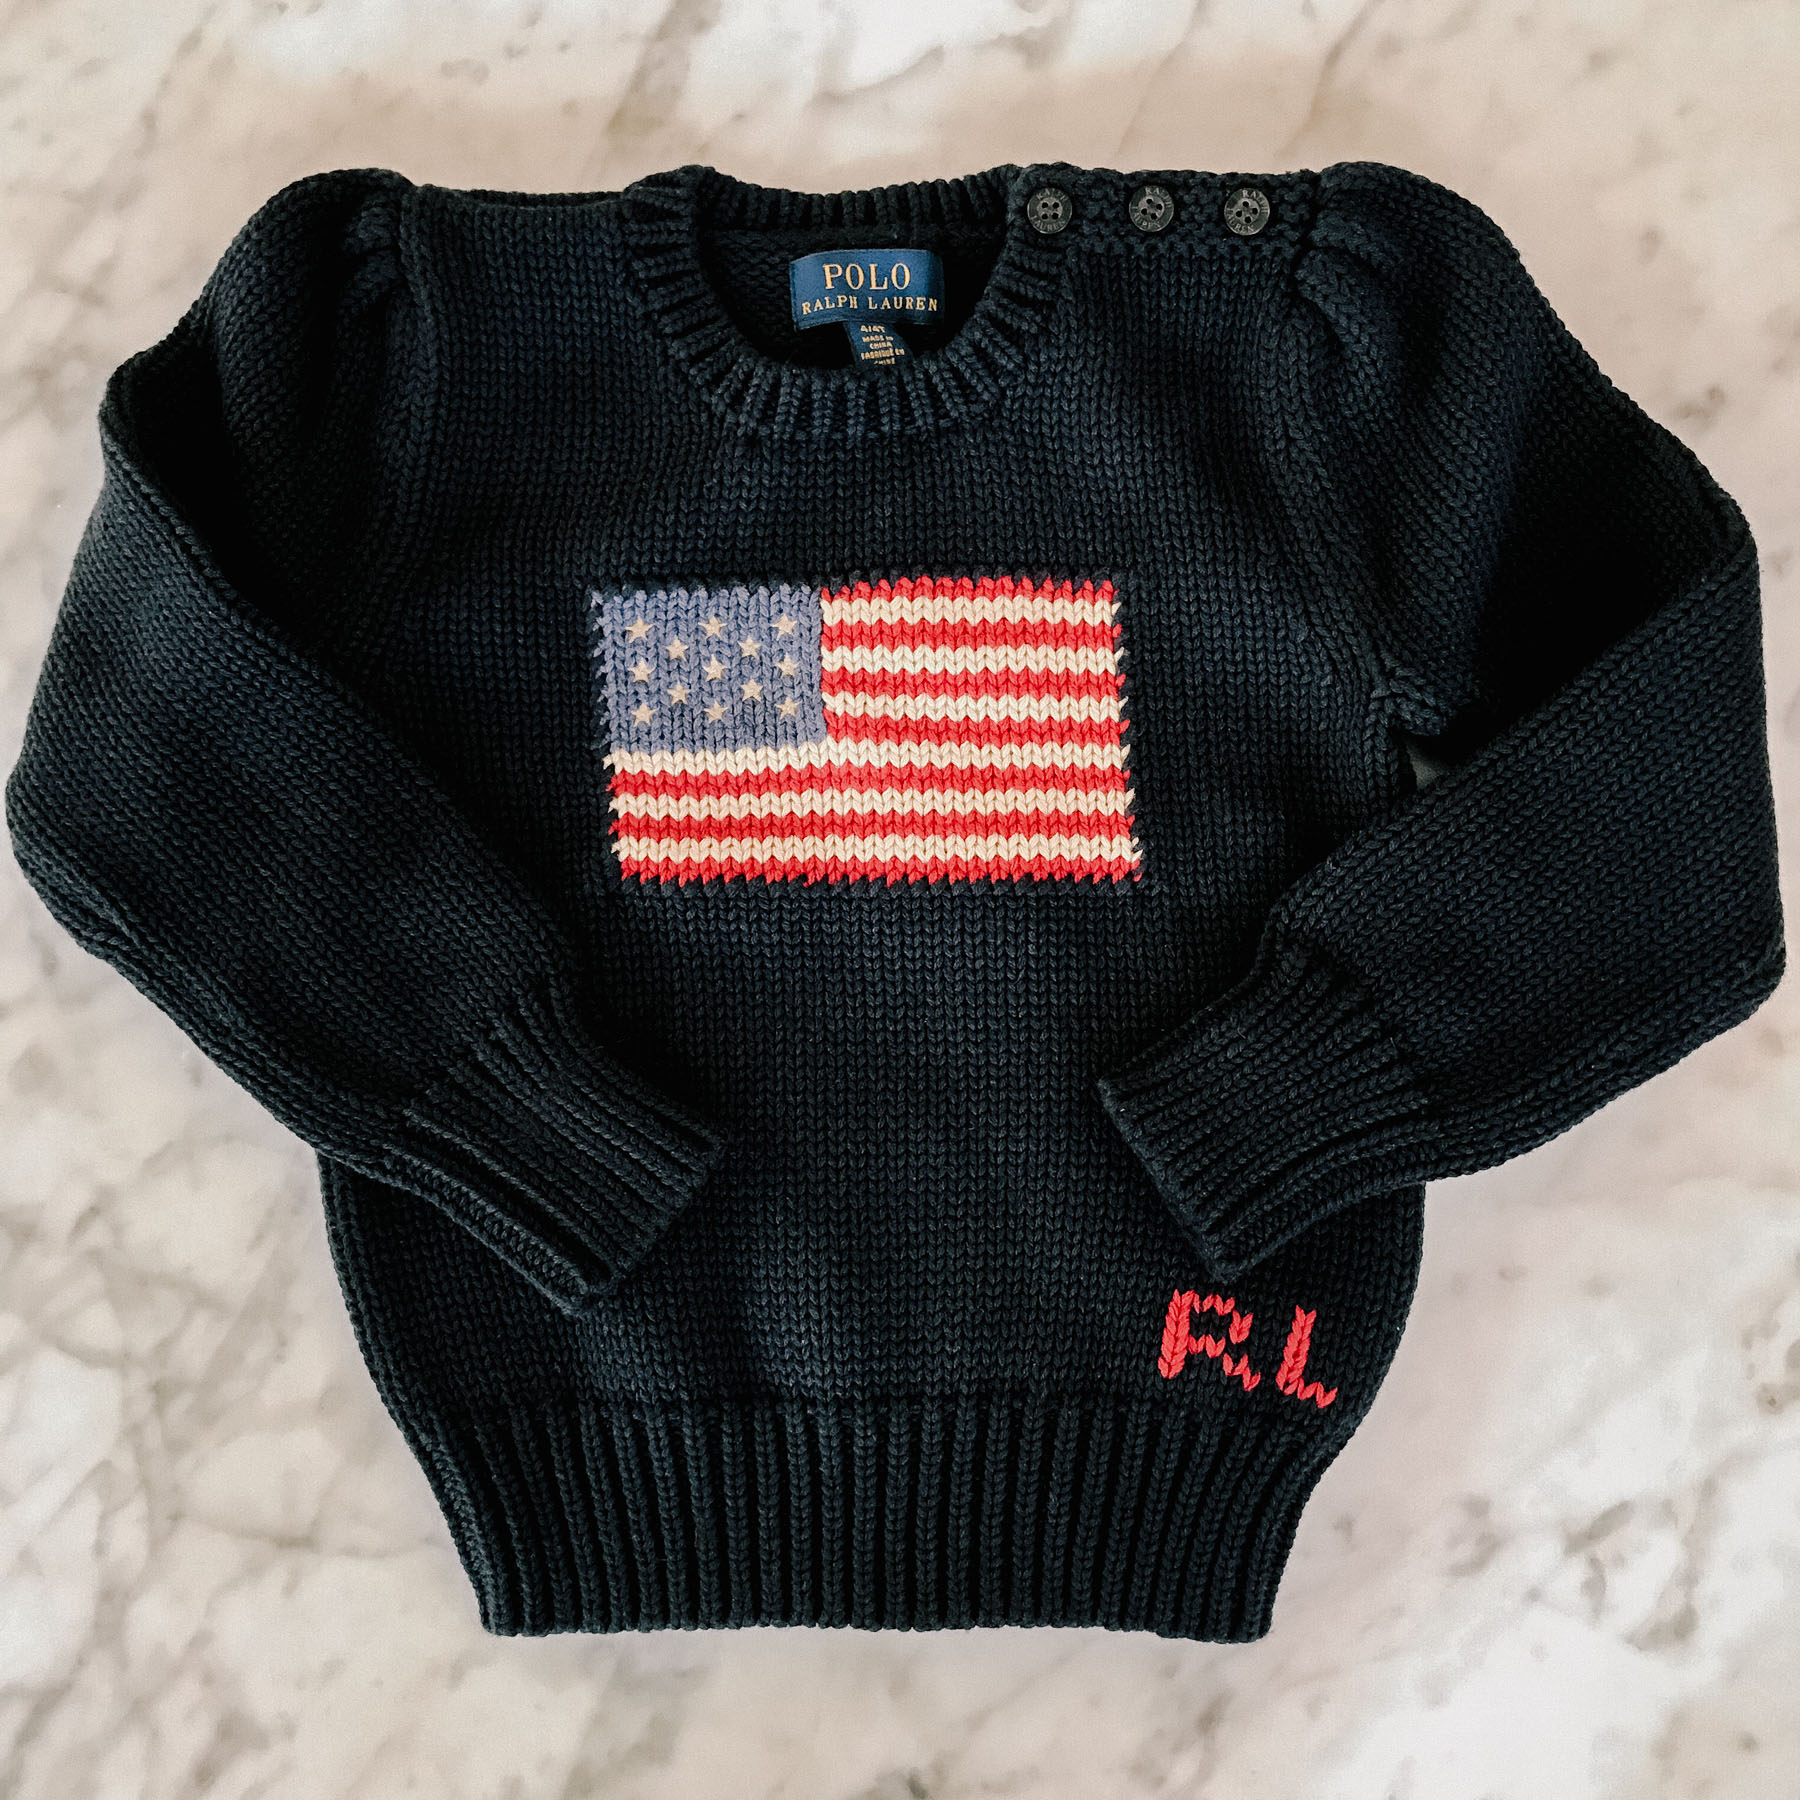 37ff5604d American Flag Sweater (This runs extremely small! Emma has a 4T.)